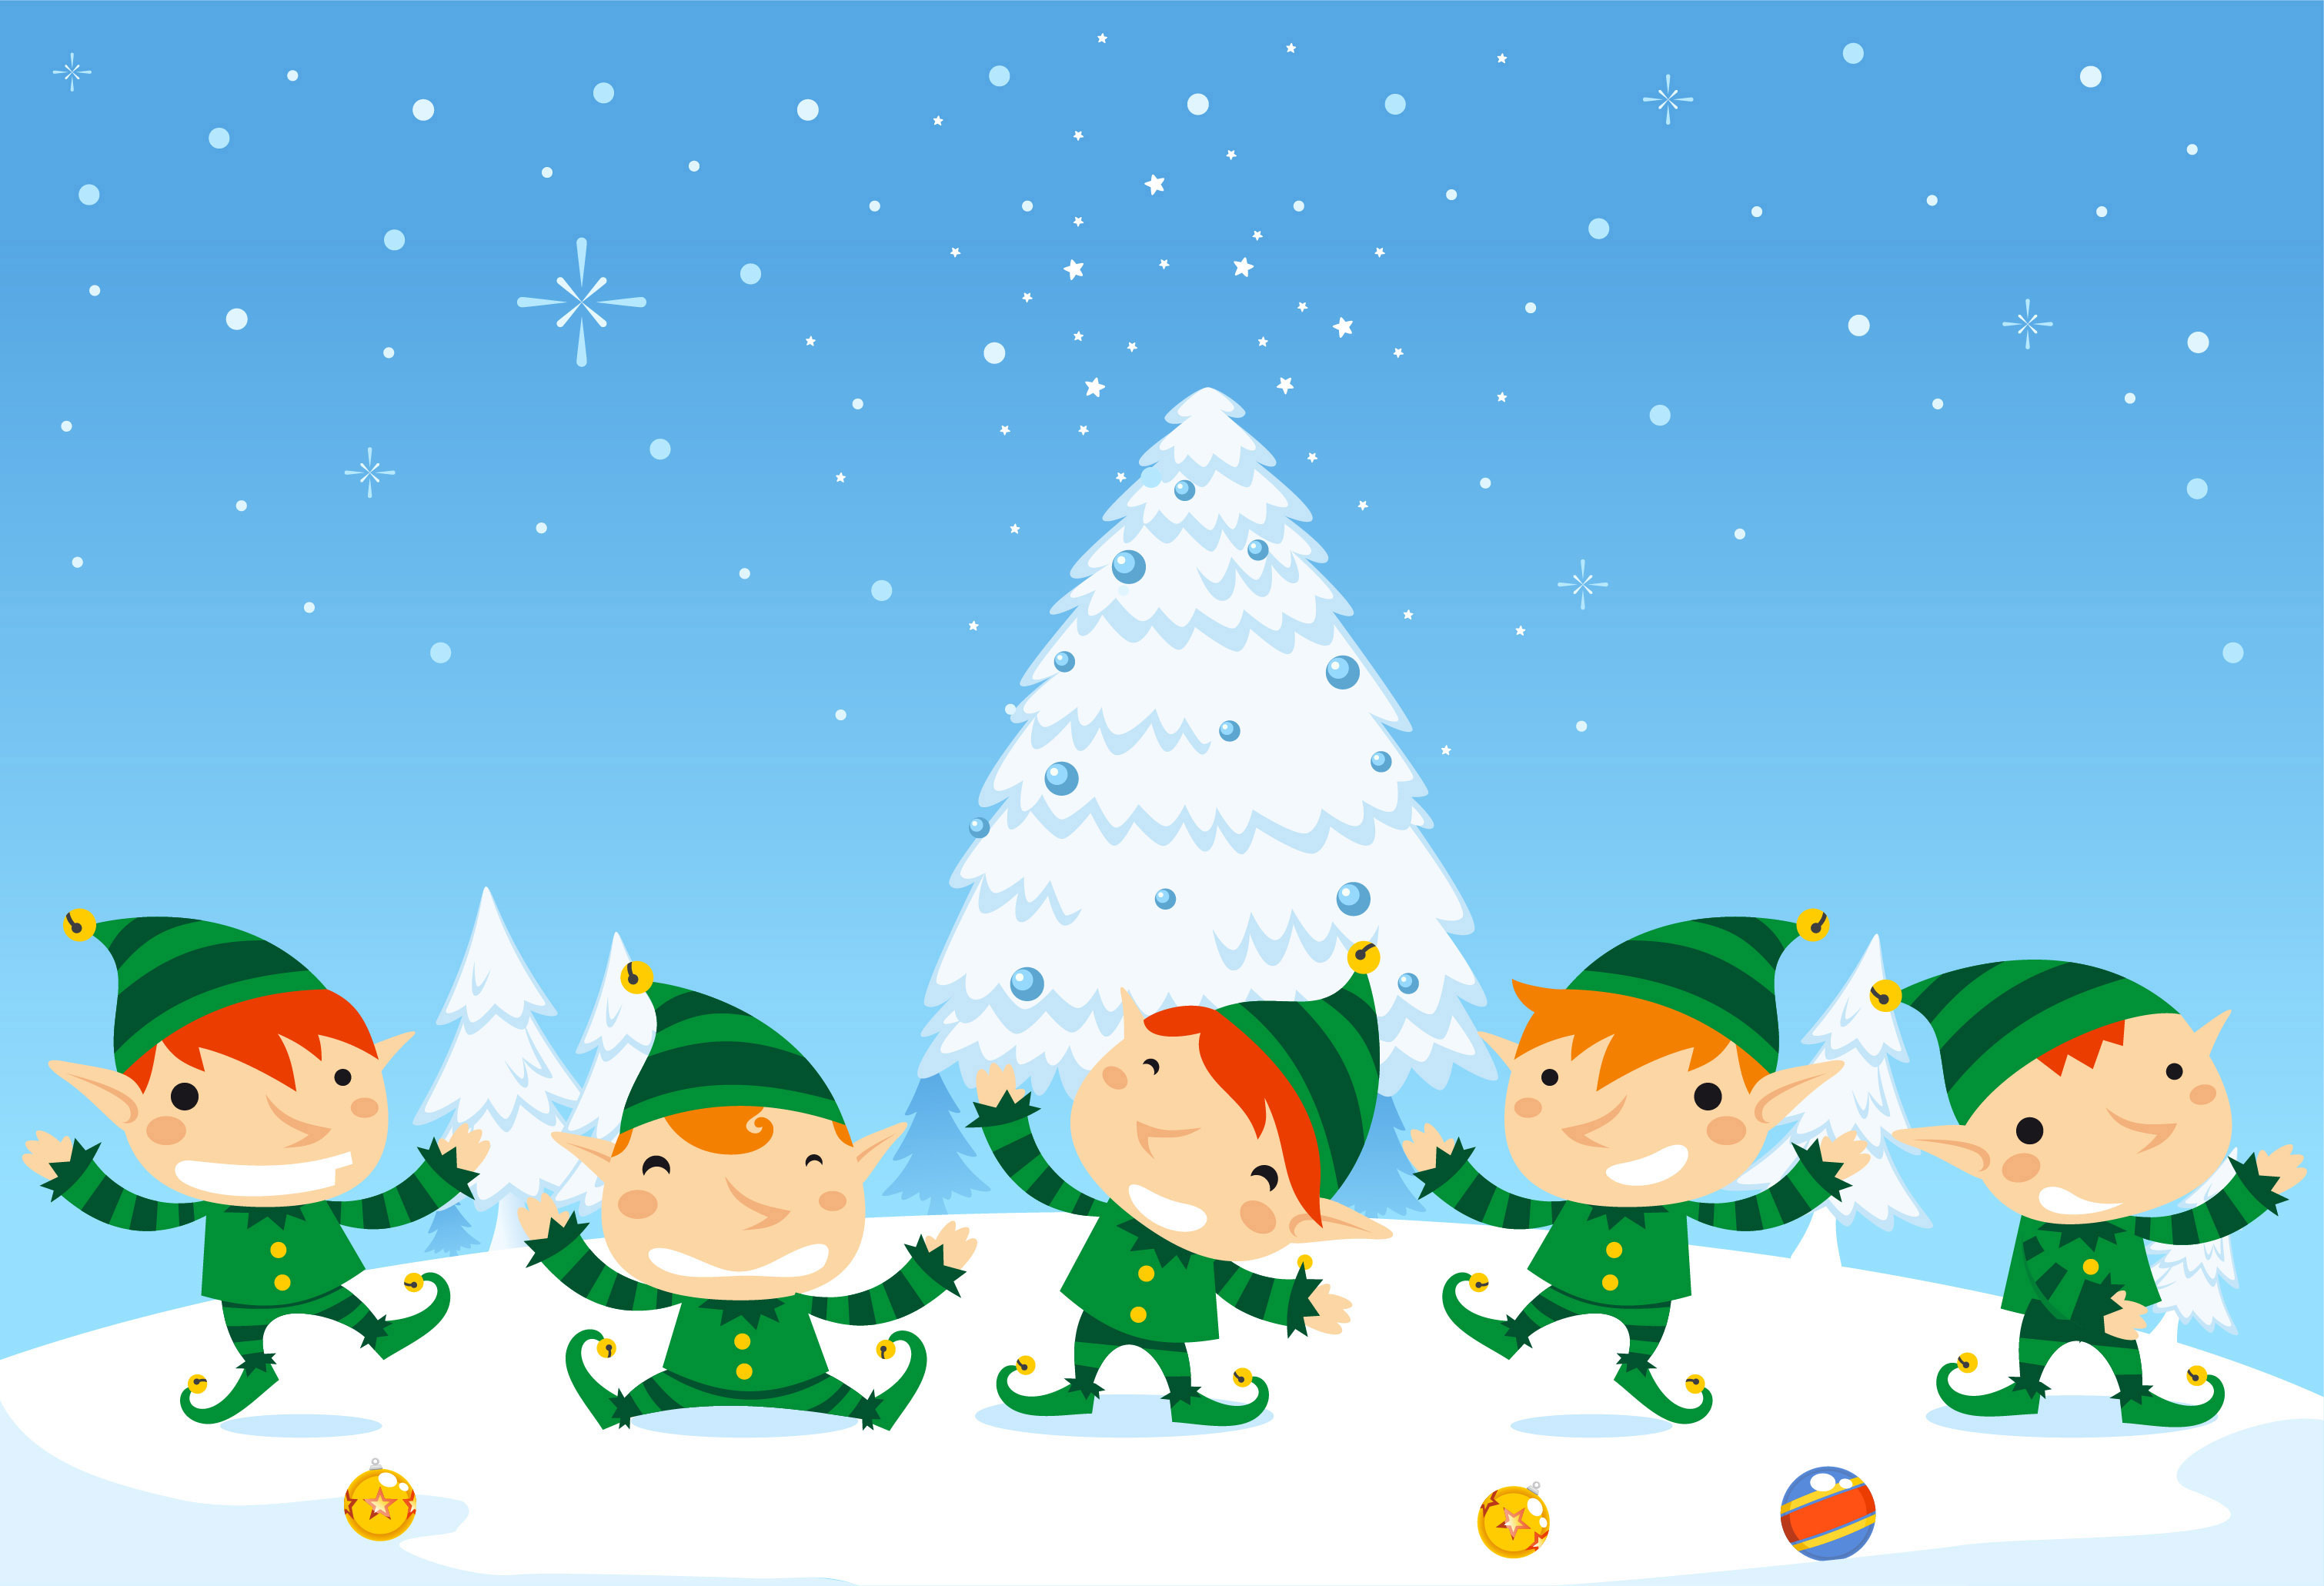 Elf auditions to join our Grotto team at Ottery St Mary this Christmas!